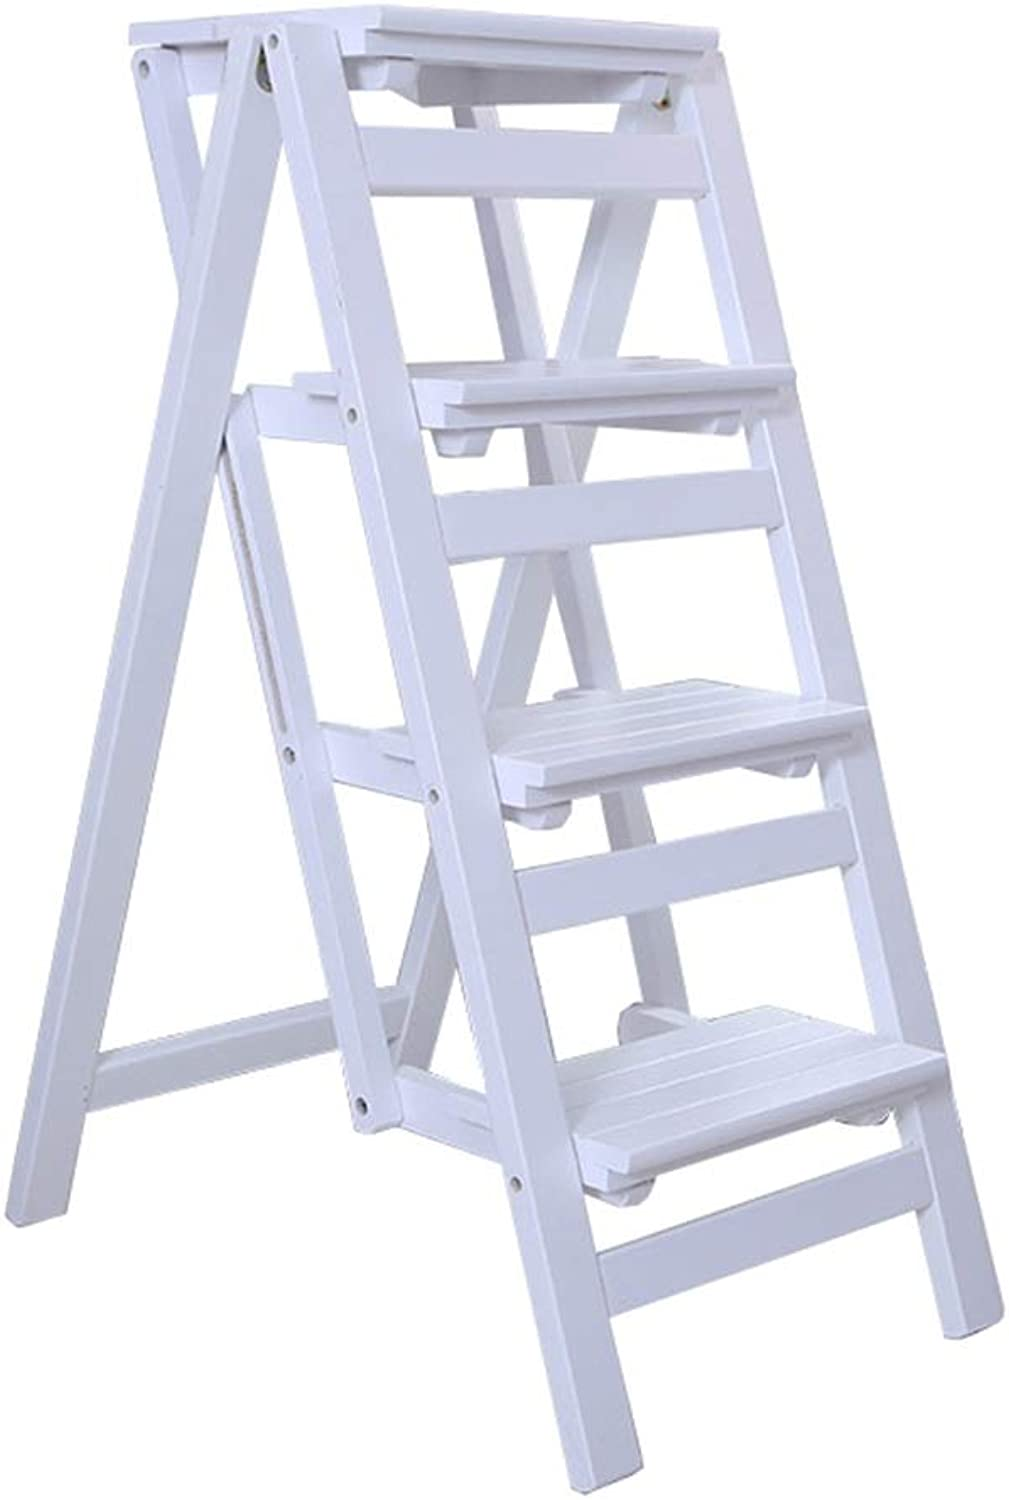 Folding Step Stool   Folding Ladder Wood for Adult   Ladder-Shaped Plant Rack   Display Rack Shelf   Multi-Function Chair